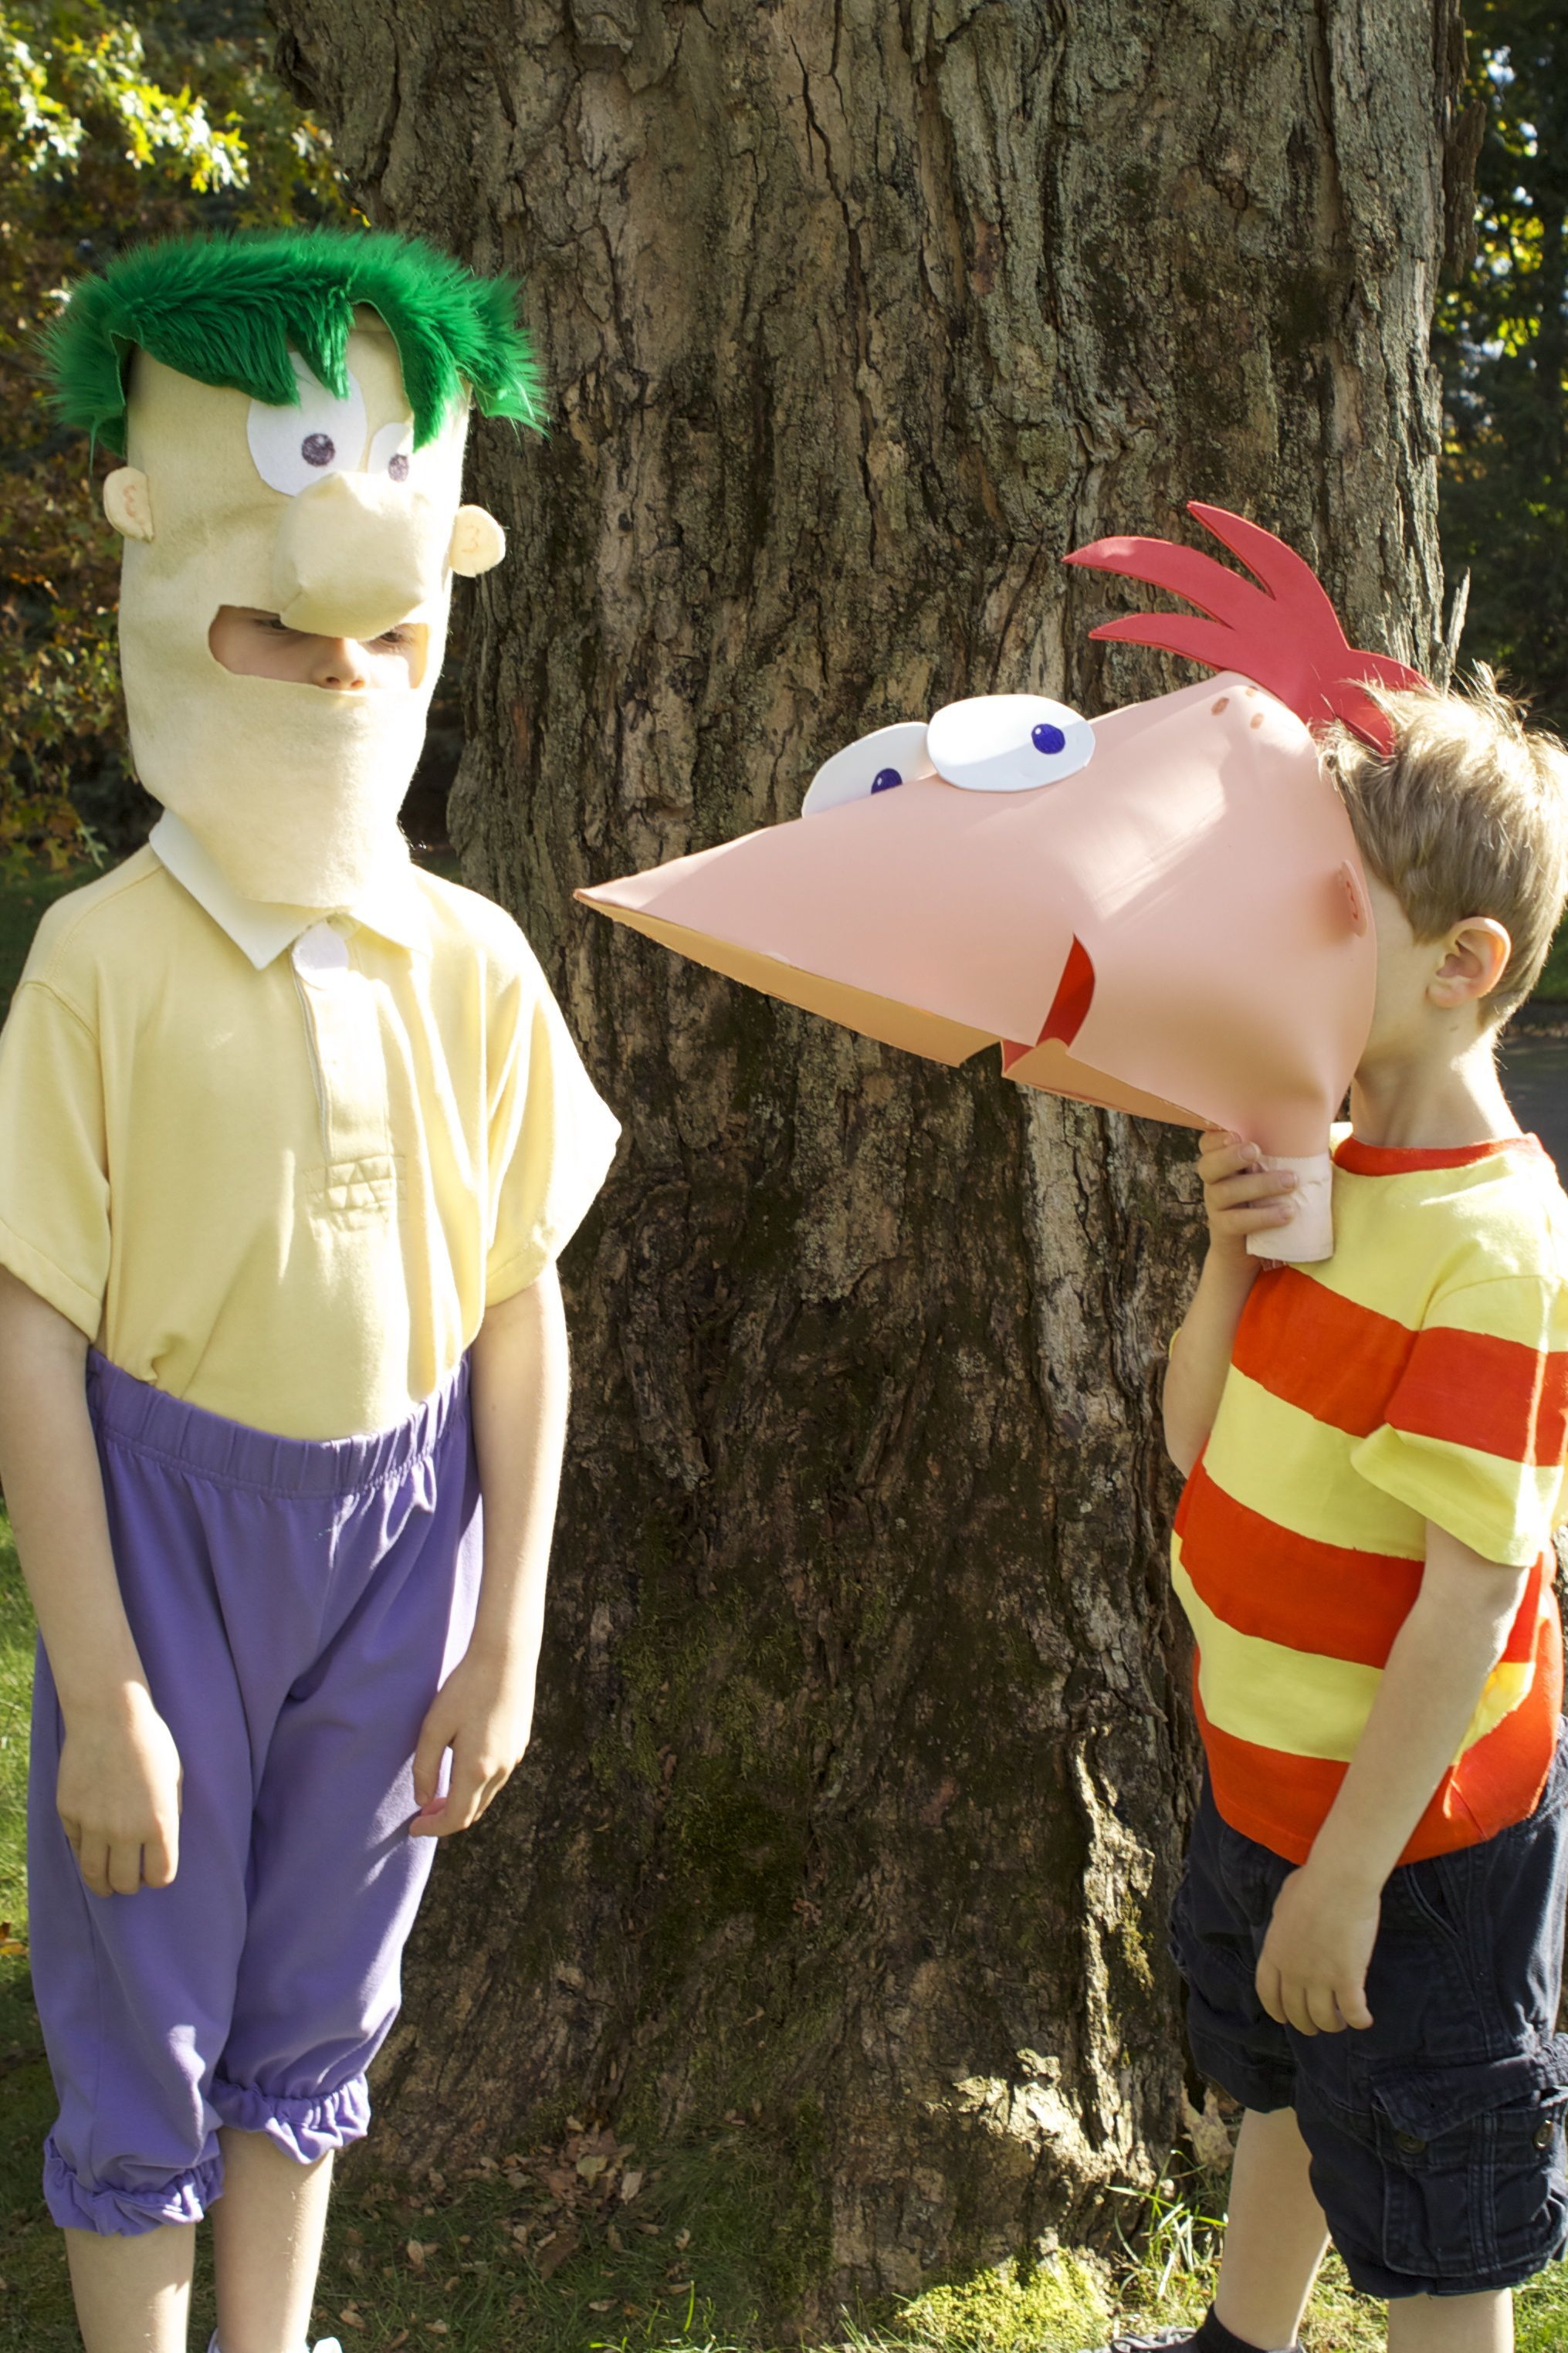 phineas costume, ferb costume #disneyside | crafty projects i've